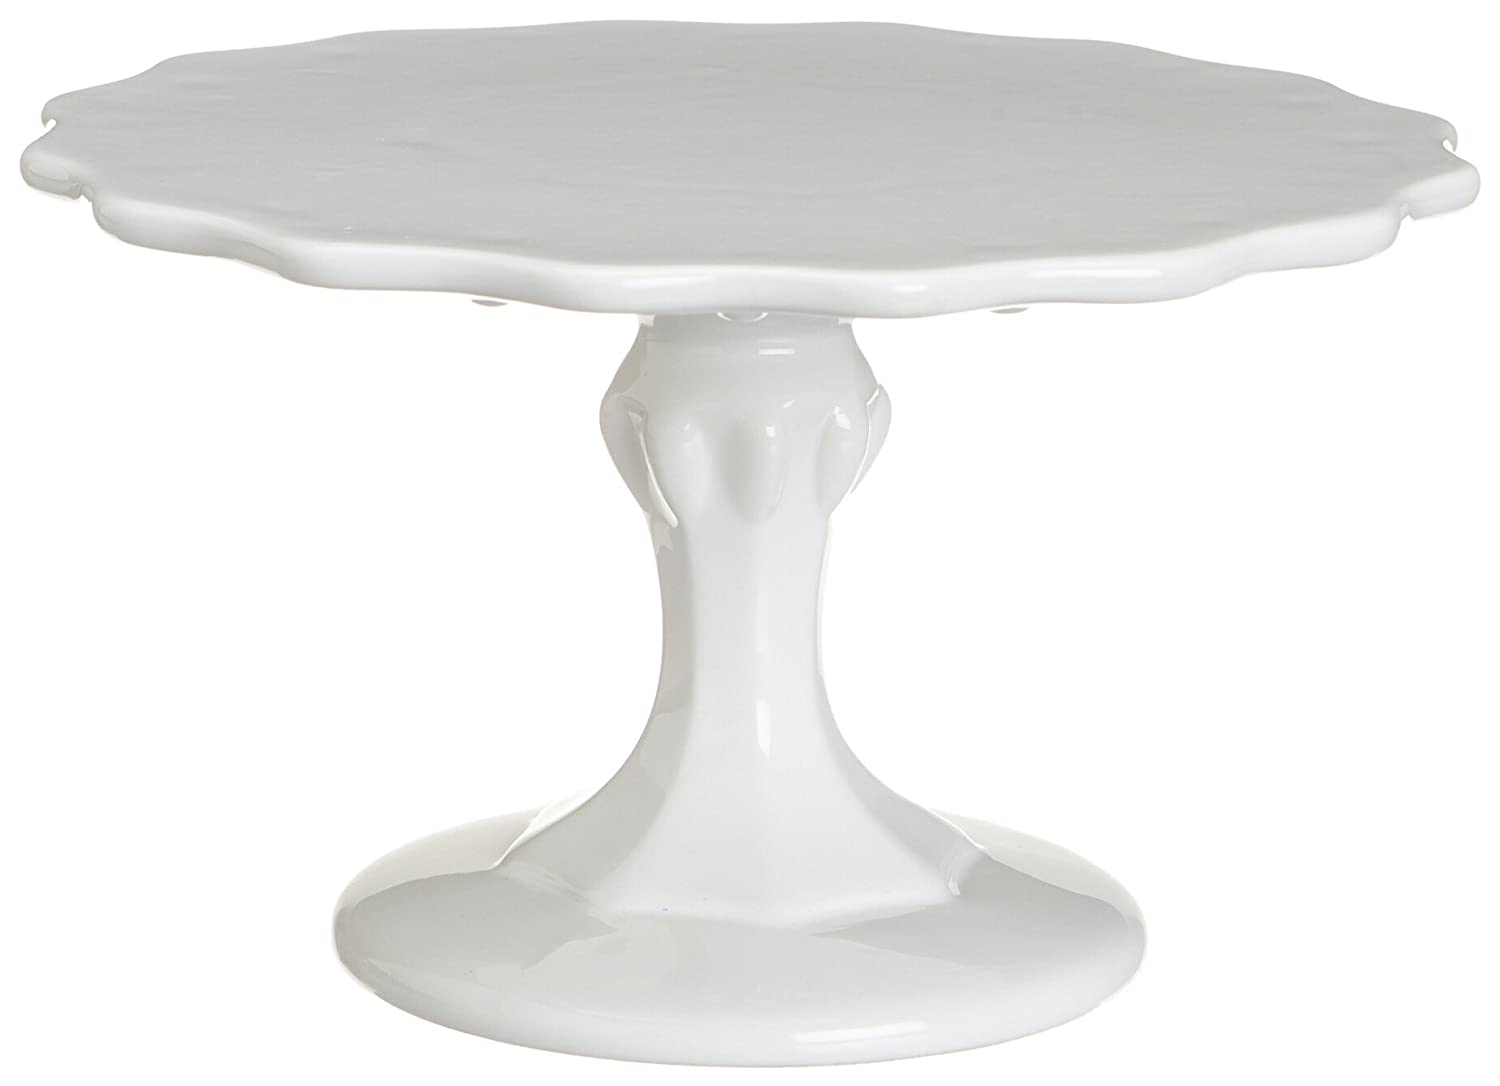 pedestal stands or l french stand white design home antique circa plant furniture columnar at alabaster column